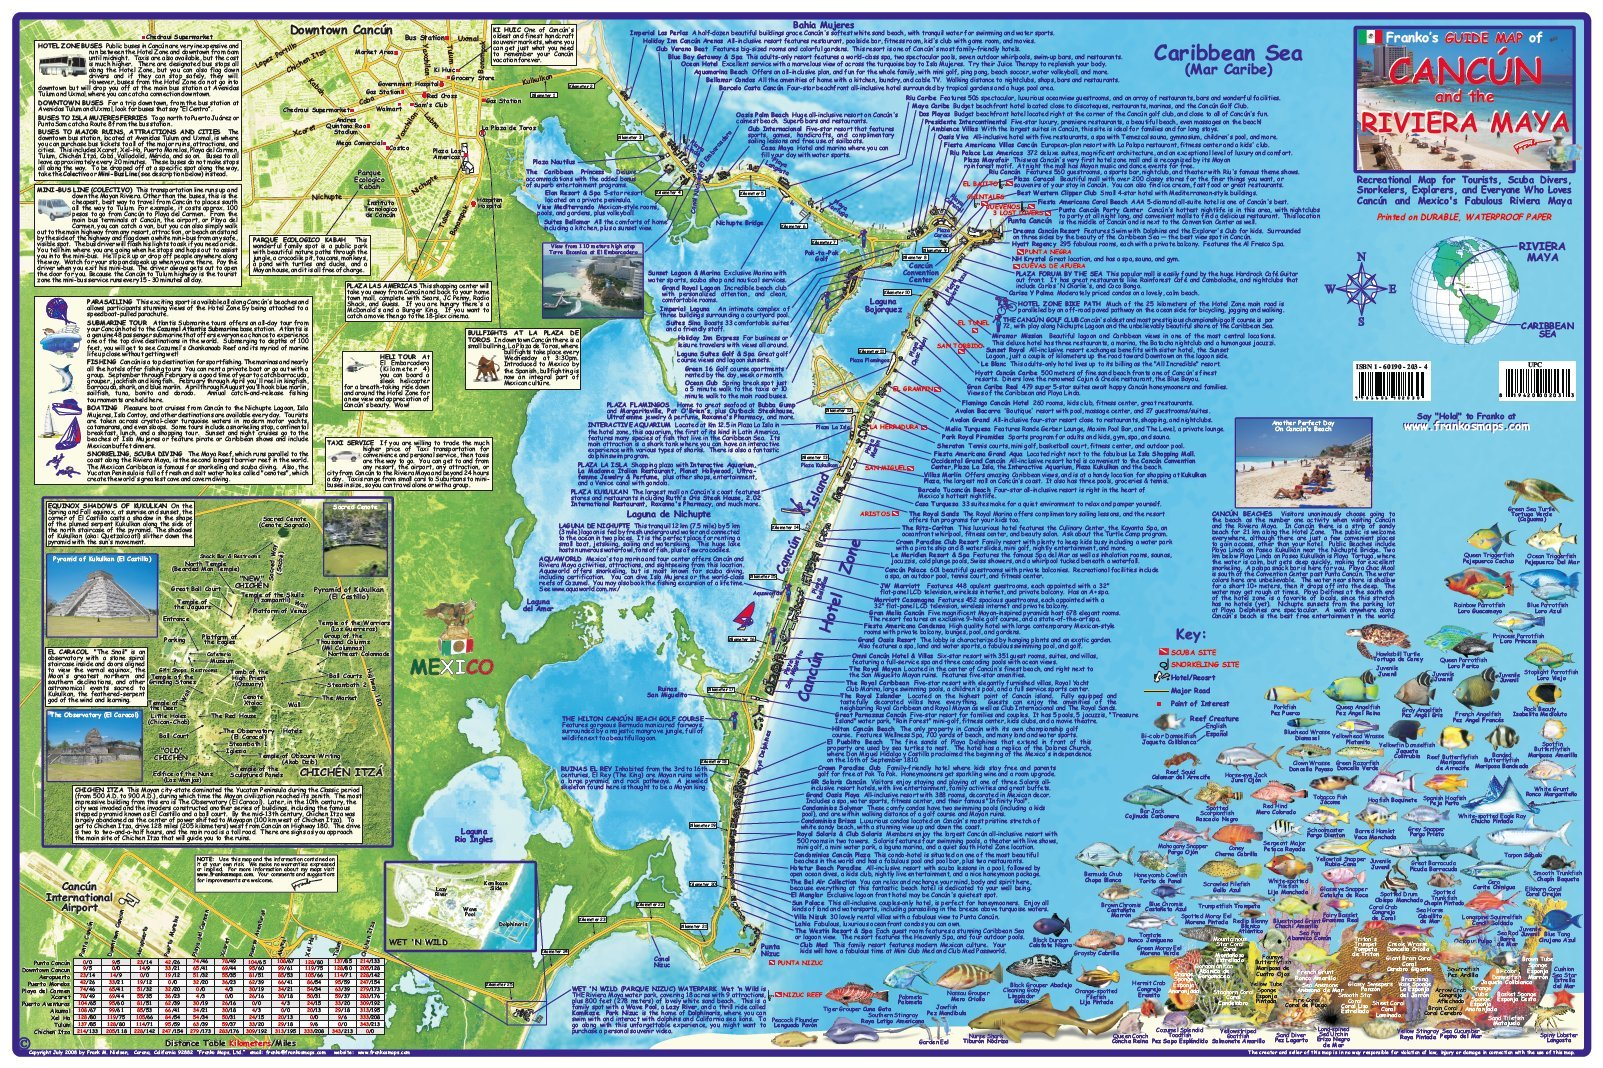 Cancun & Riviera Maya Mexico Adventure & Dive Map Laminated Poster on